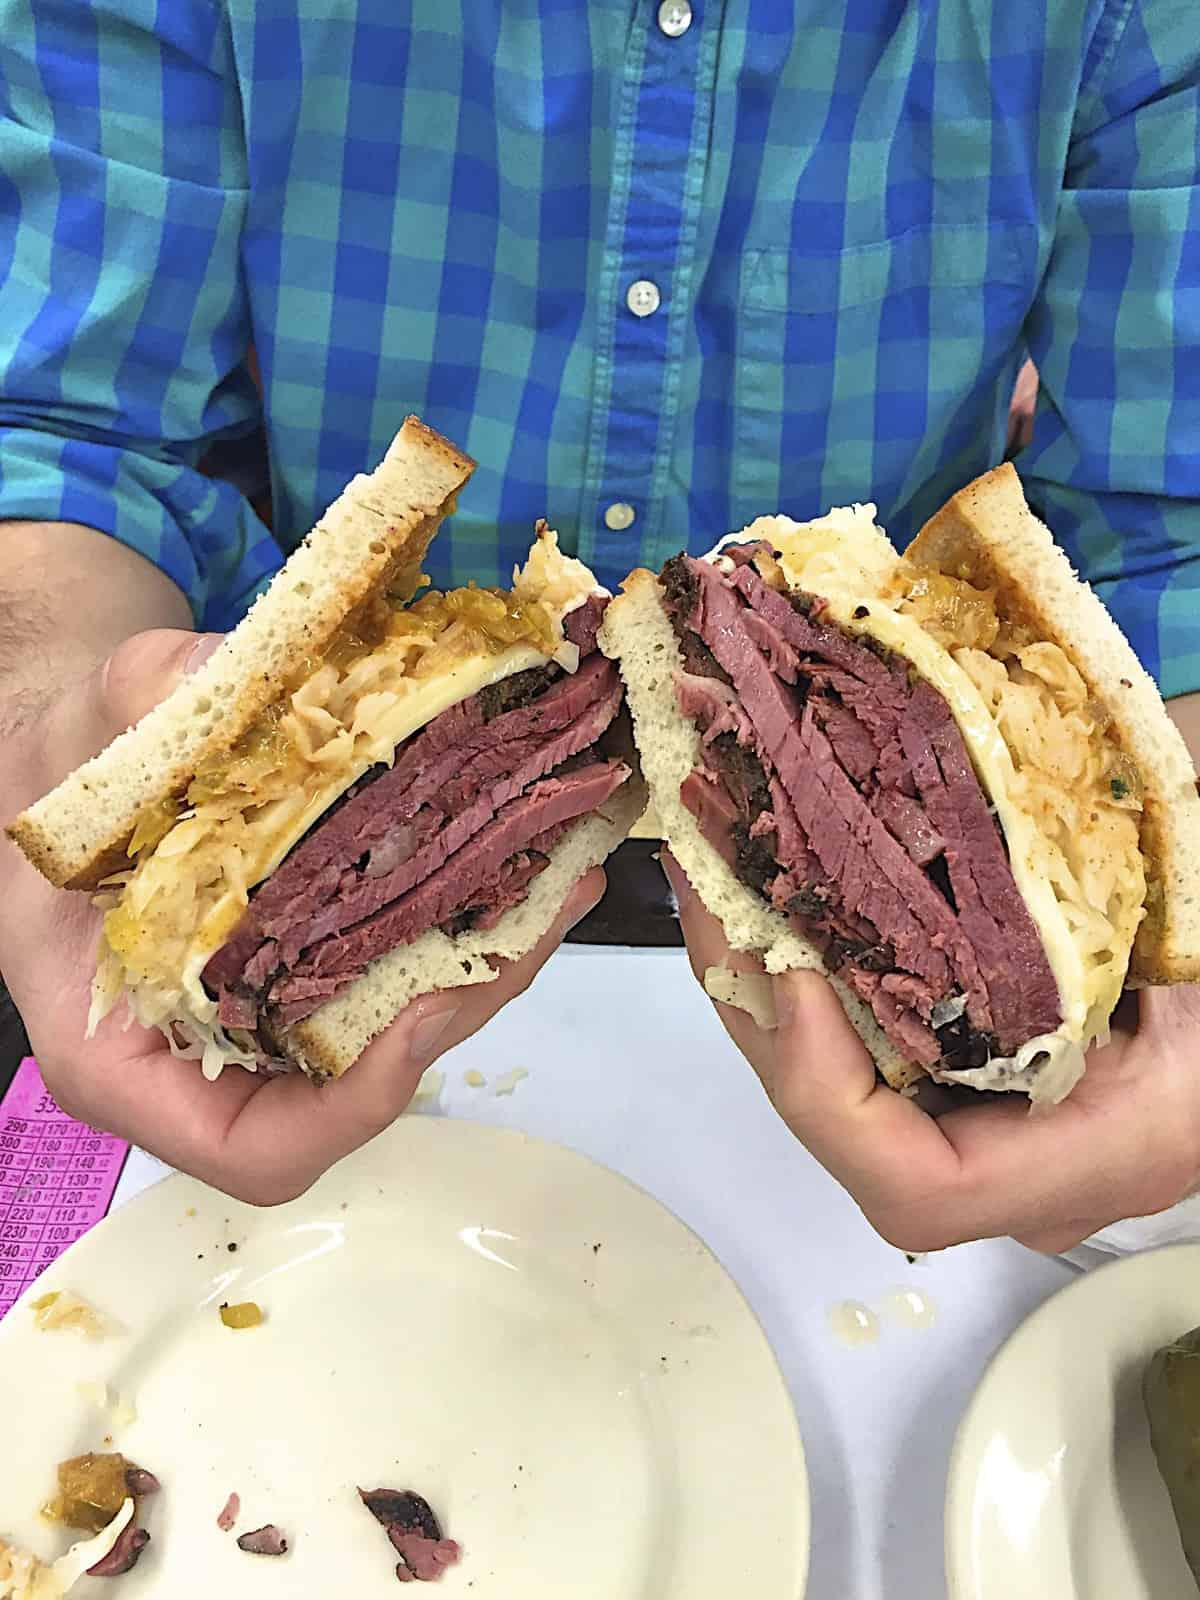 Katz's Delicatessen - The BakerMama Taste of NYC